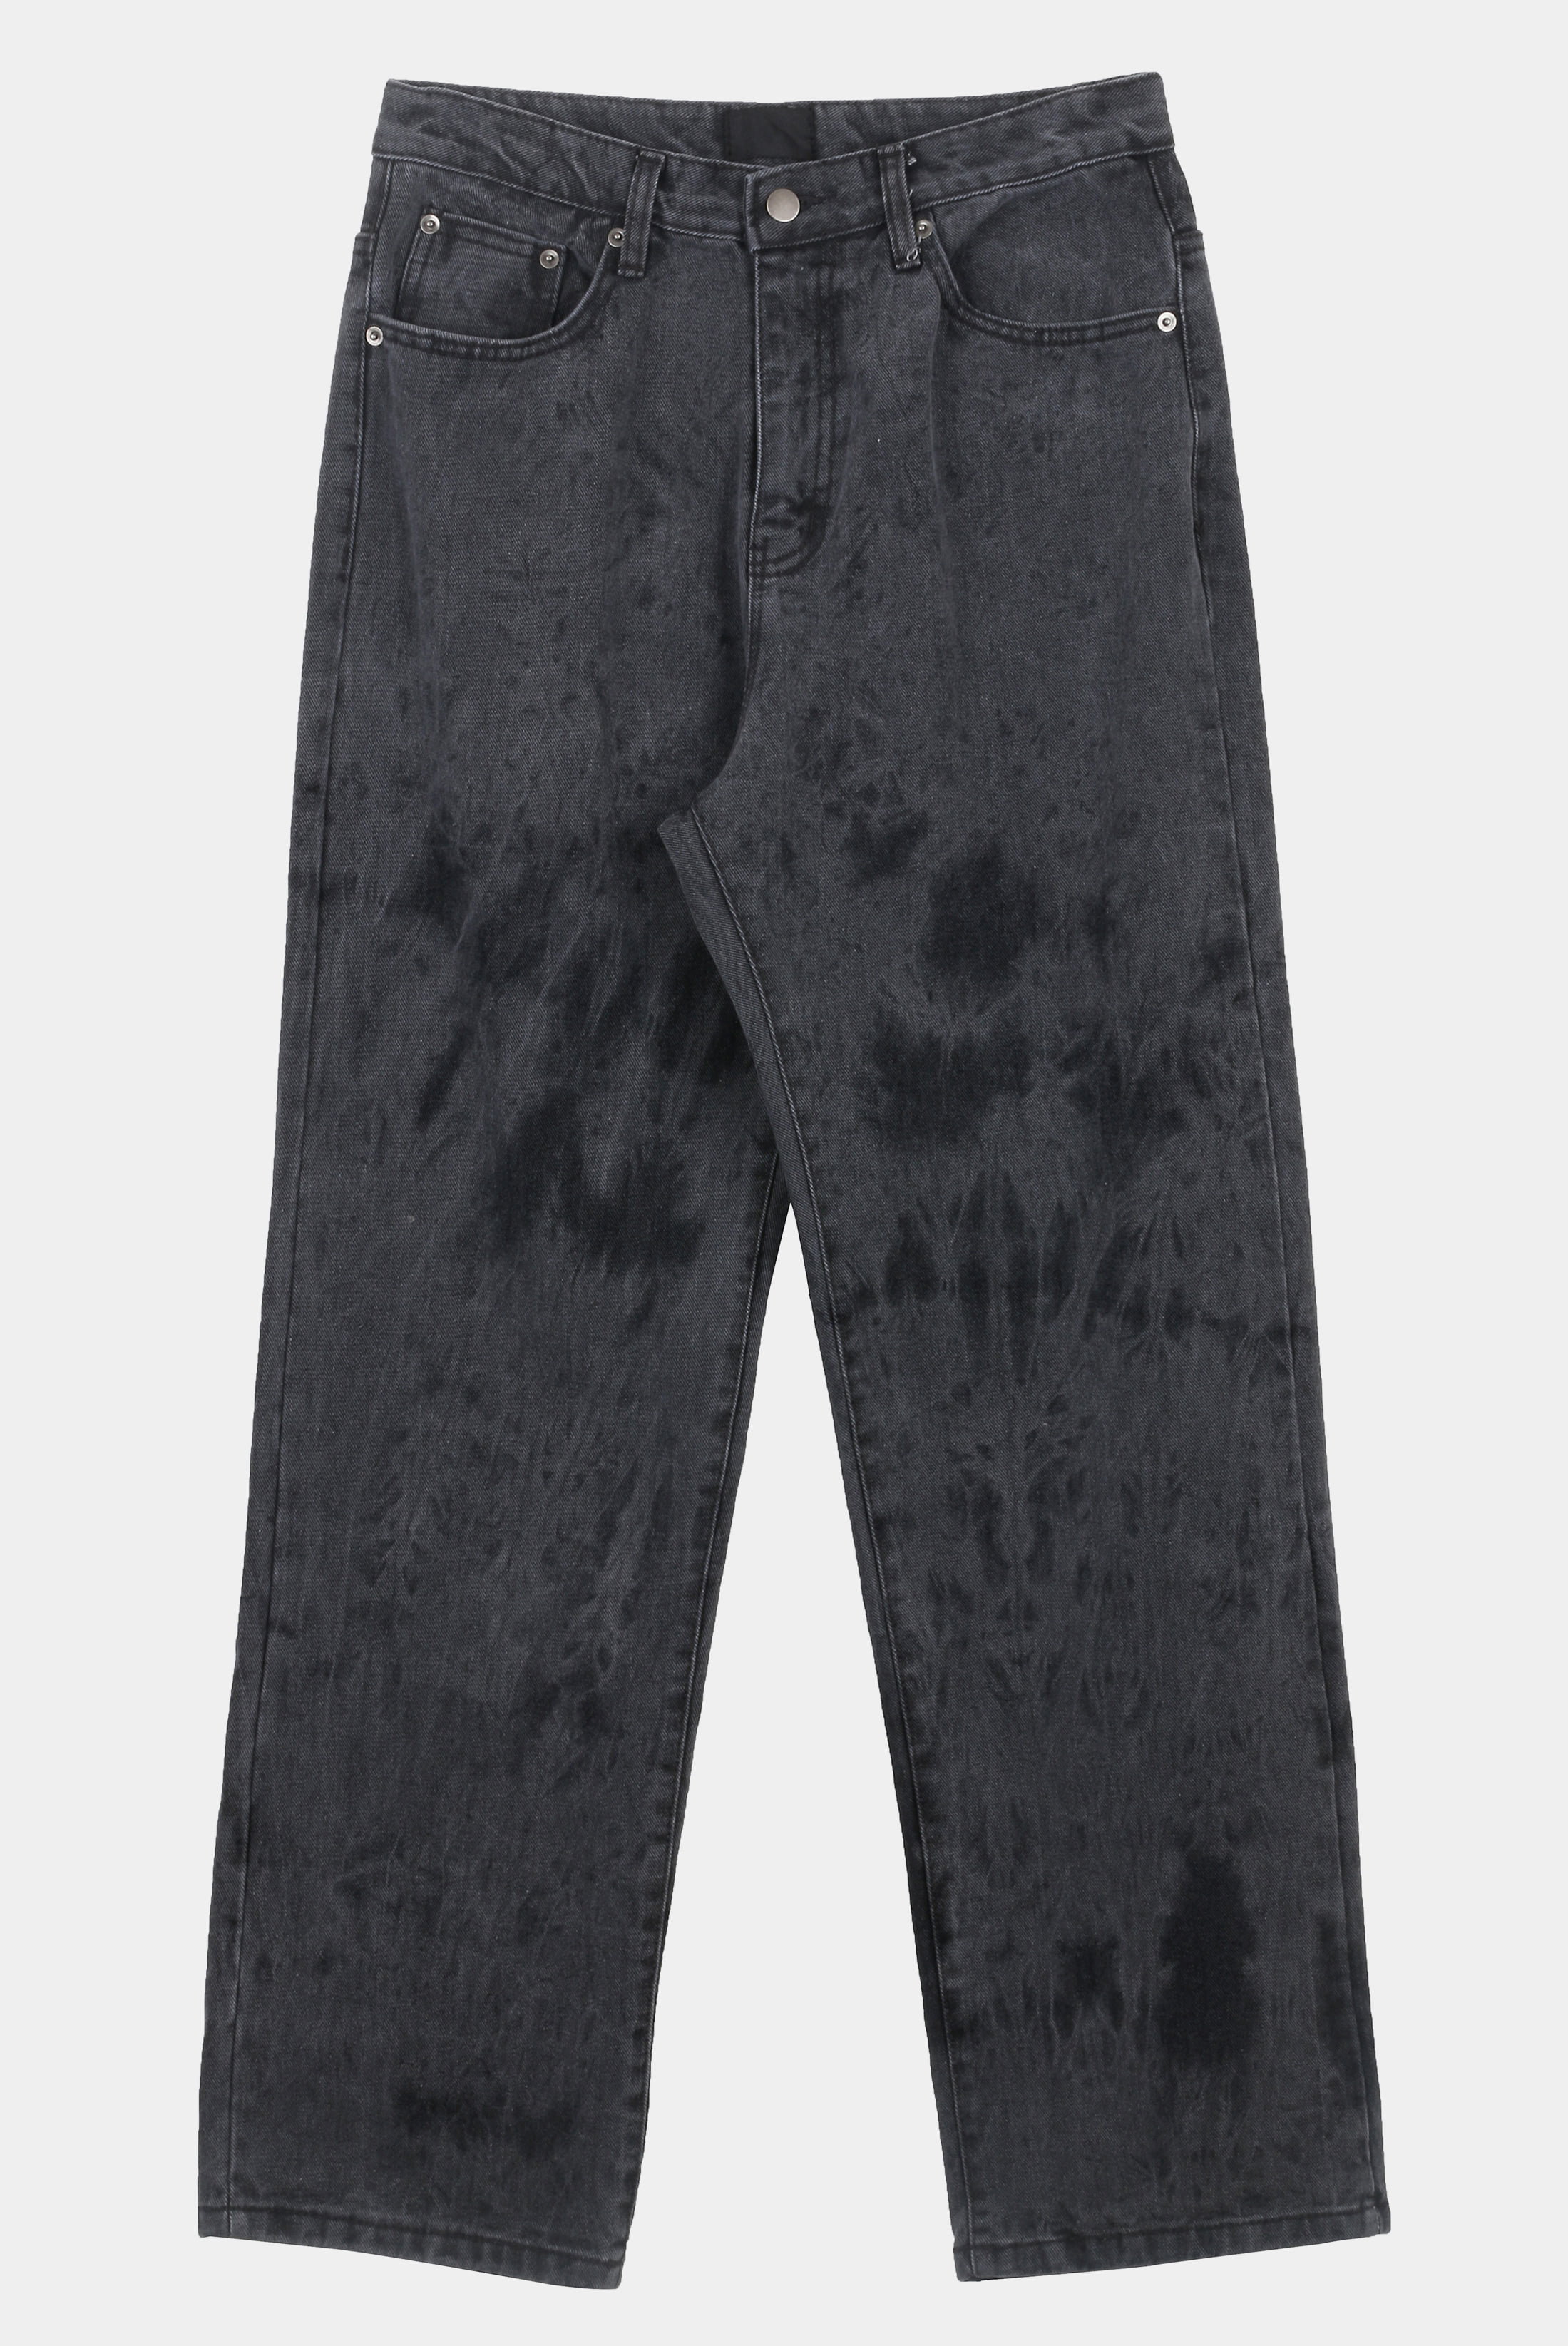 Grove_Washing Denim_Pants